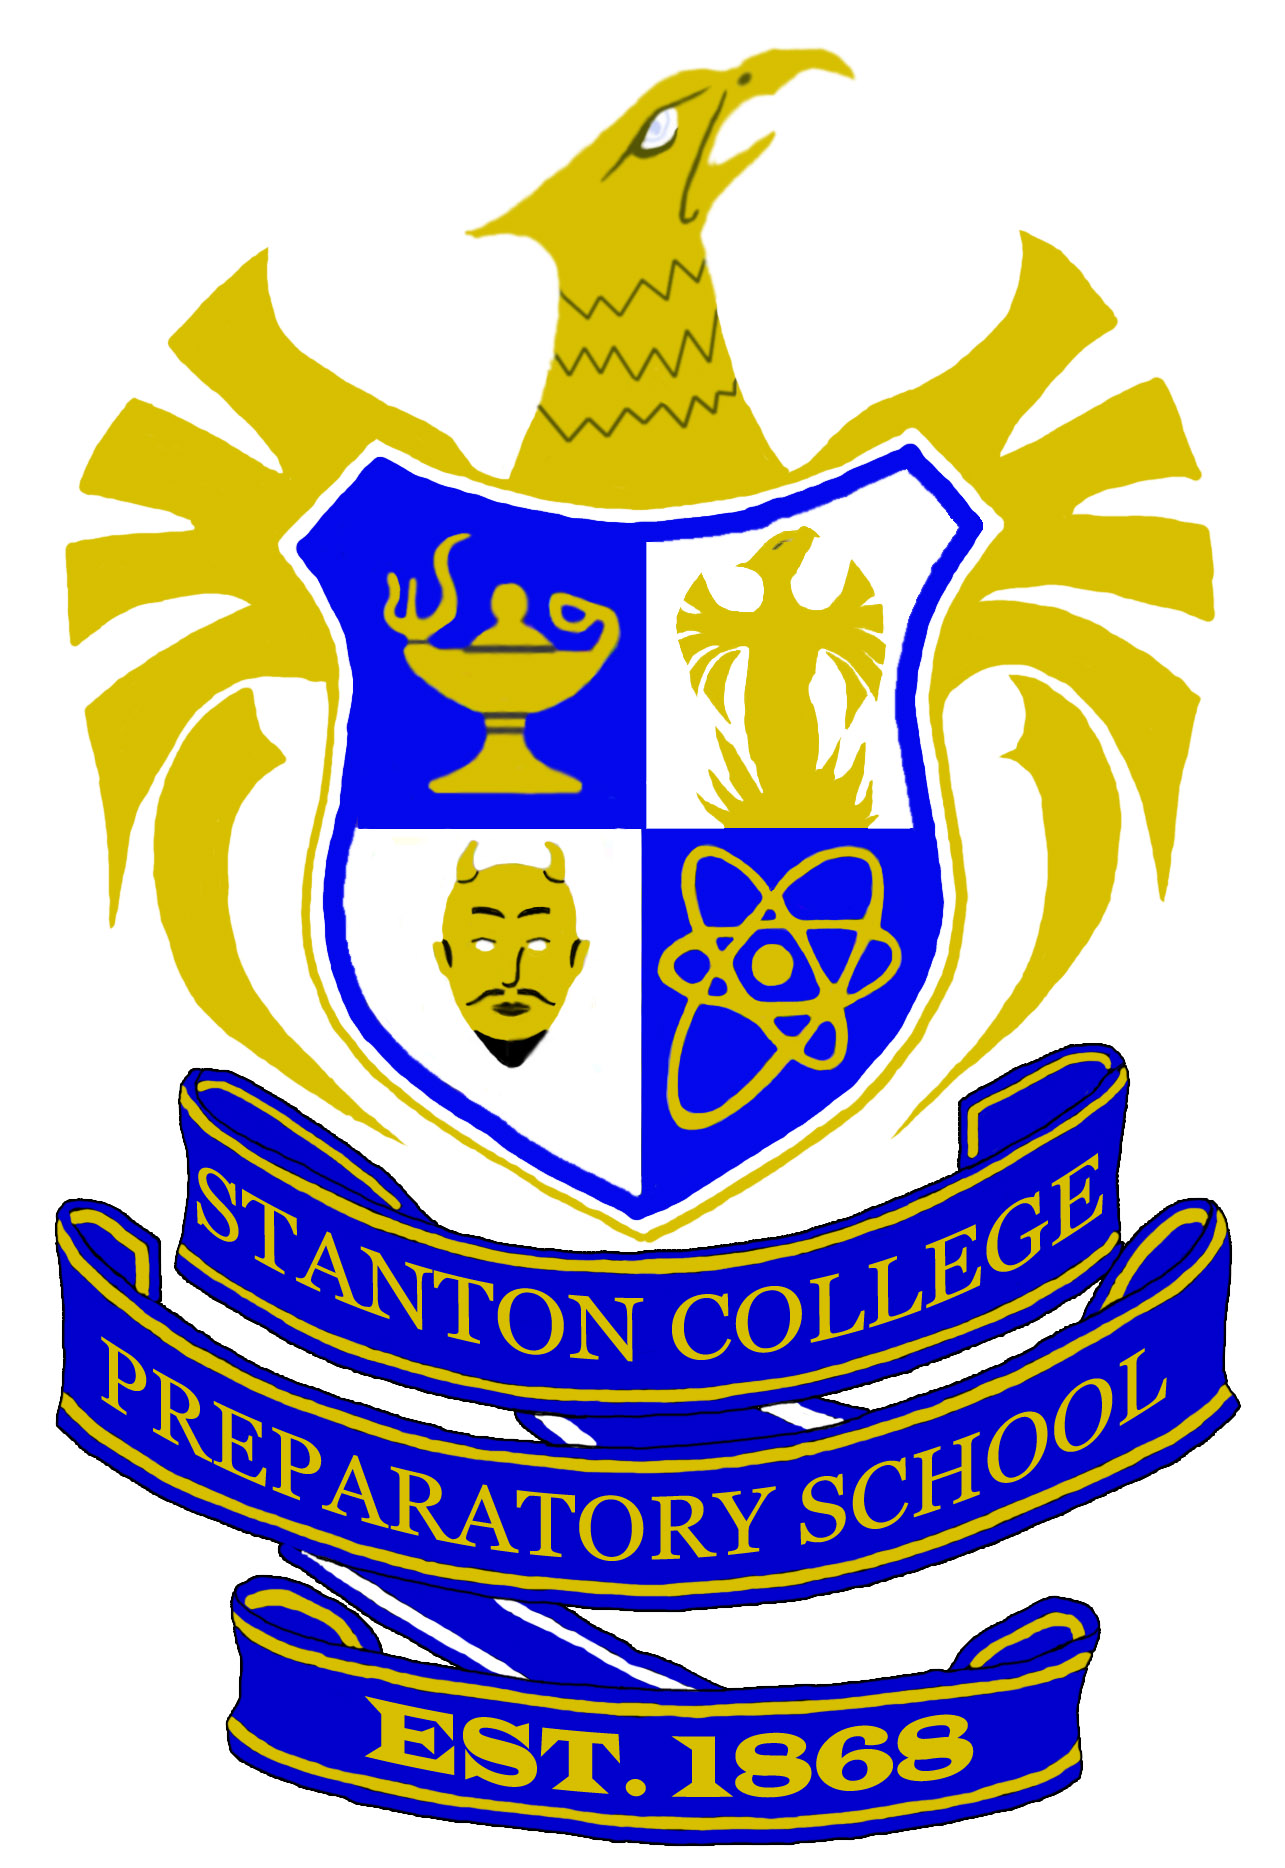 Stanton College Preparatory School Logo